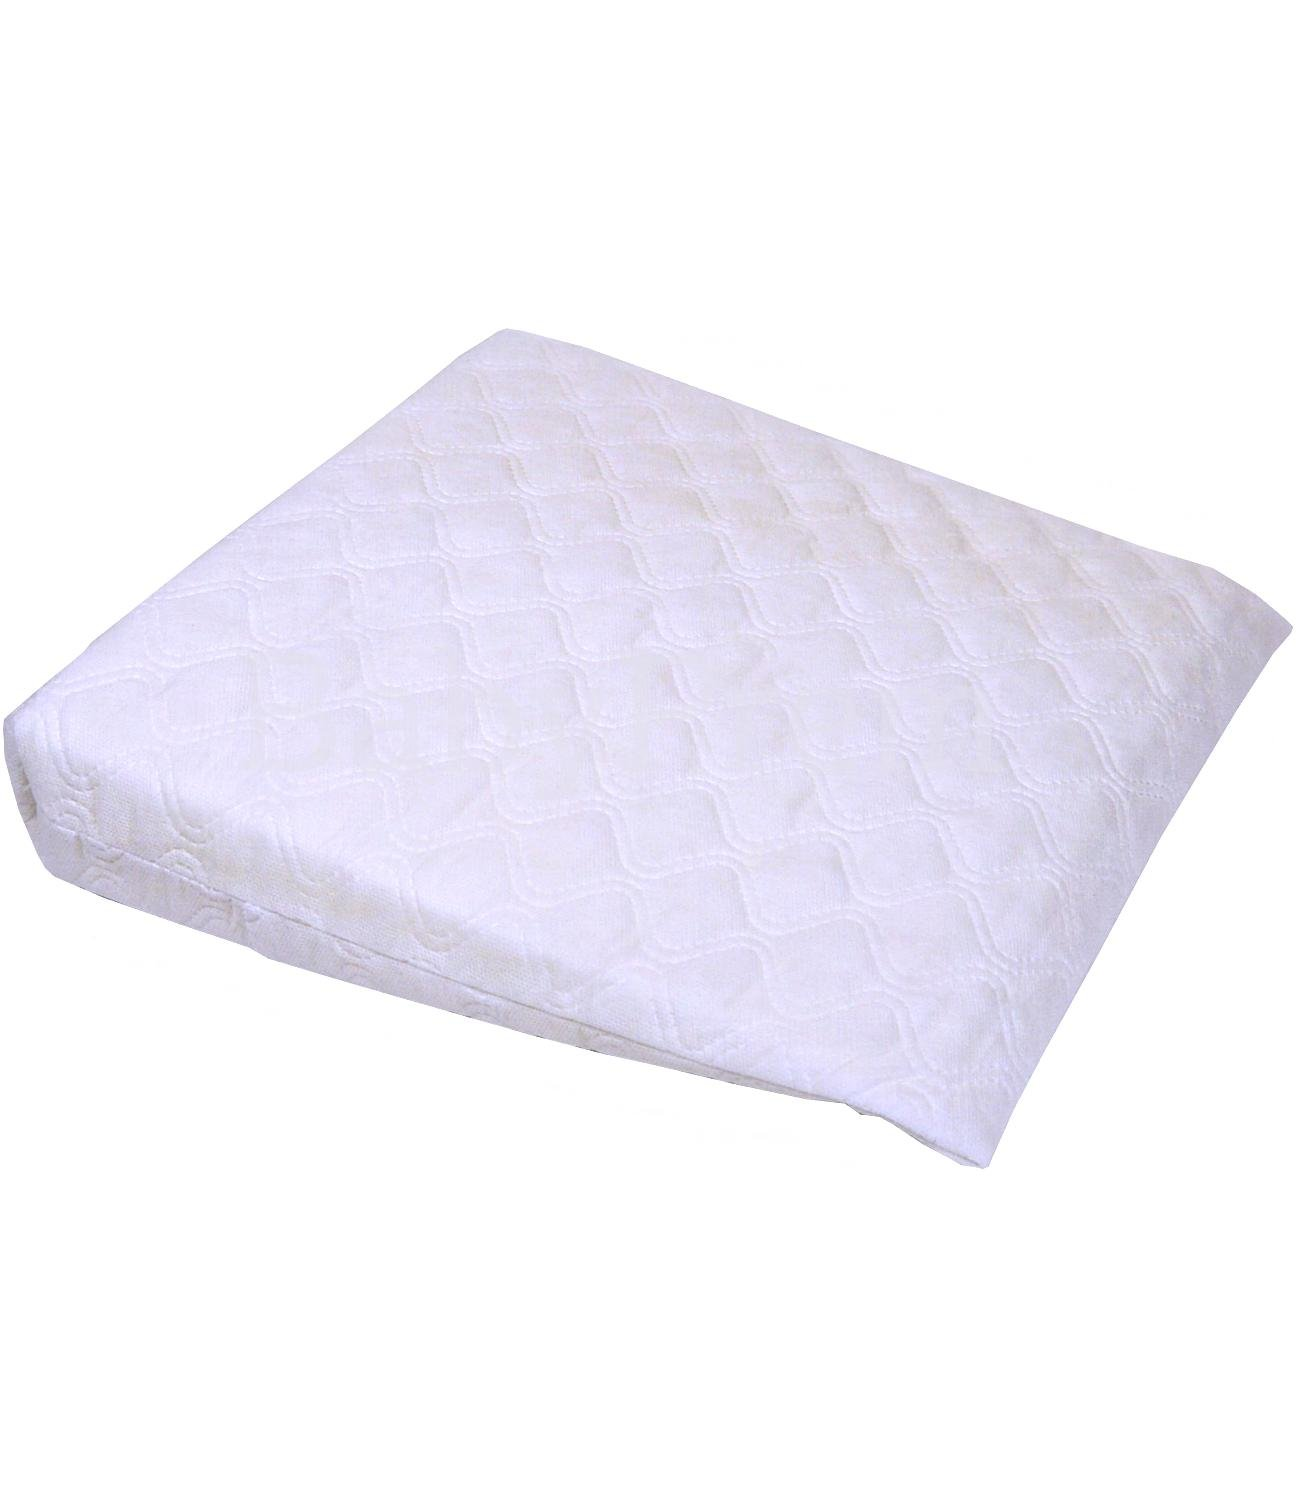 BabyPrem Baby Anti-reflux Colic Congestion Cradle Wedge Pillow 15.5 x 14''